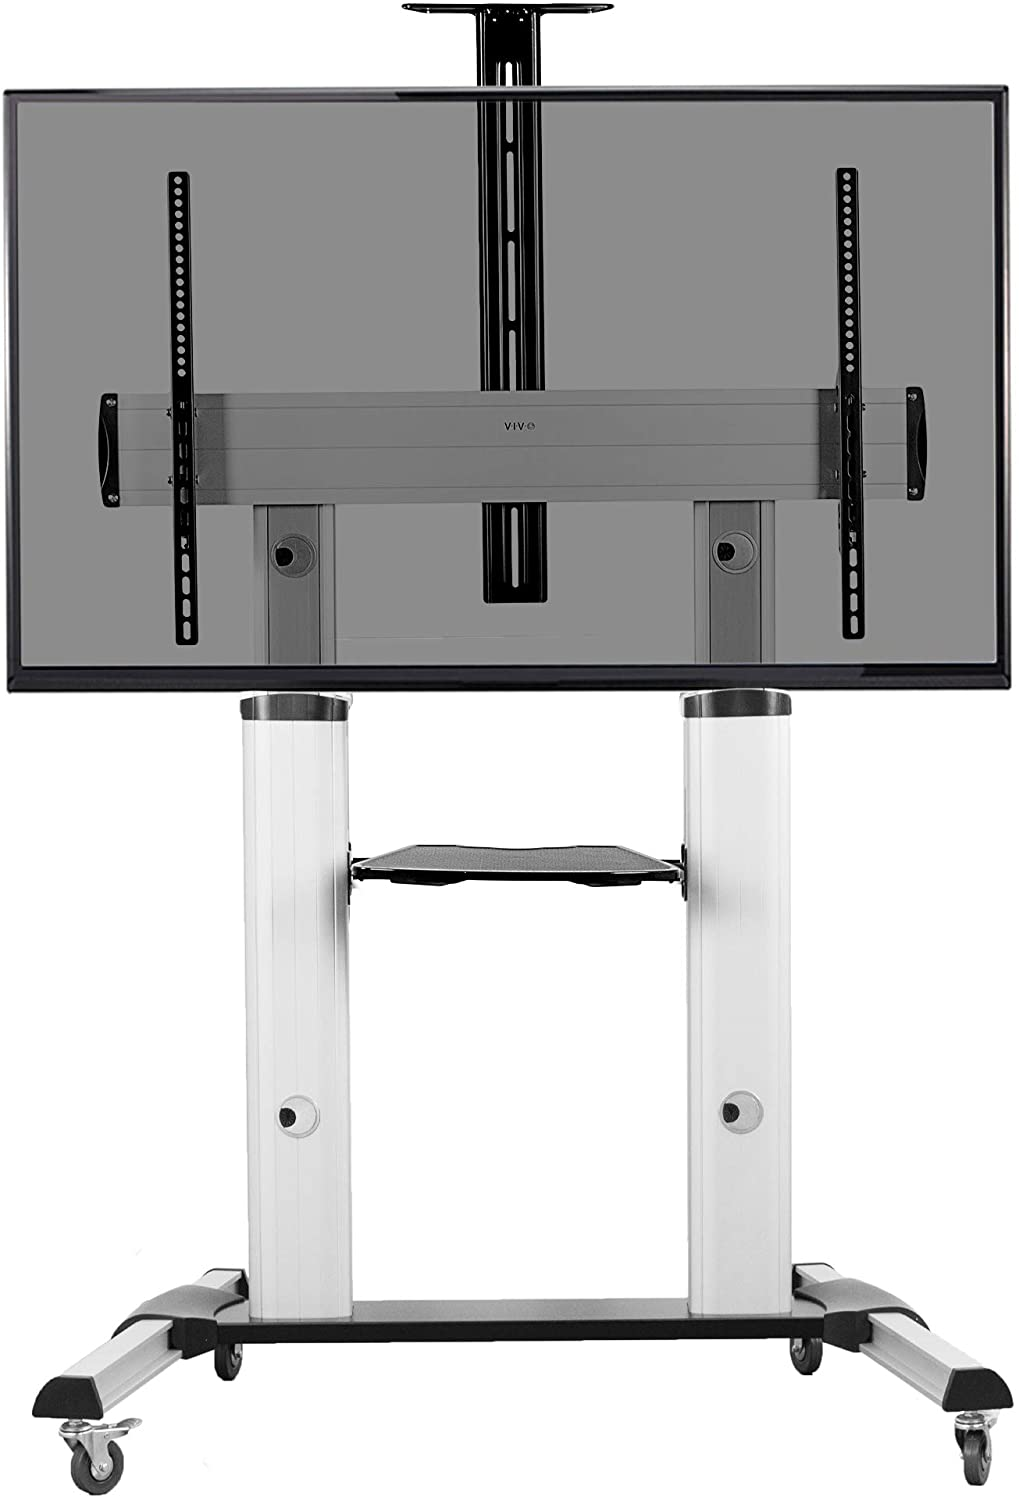 VIVO Ultra Heavy Duty Mobile 60 to 100 inch TV Stand for Flat Screens, Adjustable, Rolling TV Cart Mount with Wheels (STAND-TV22S)